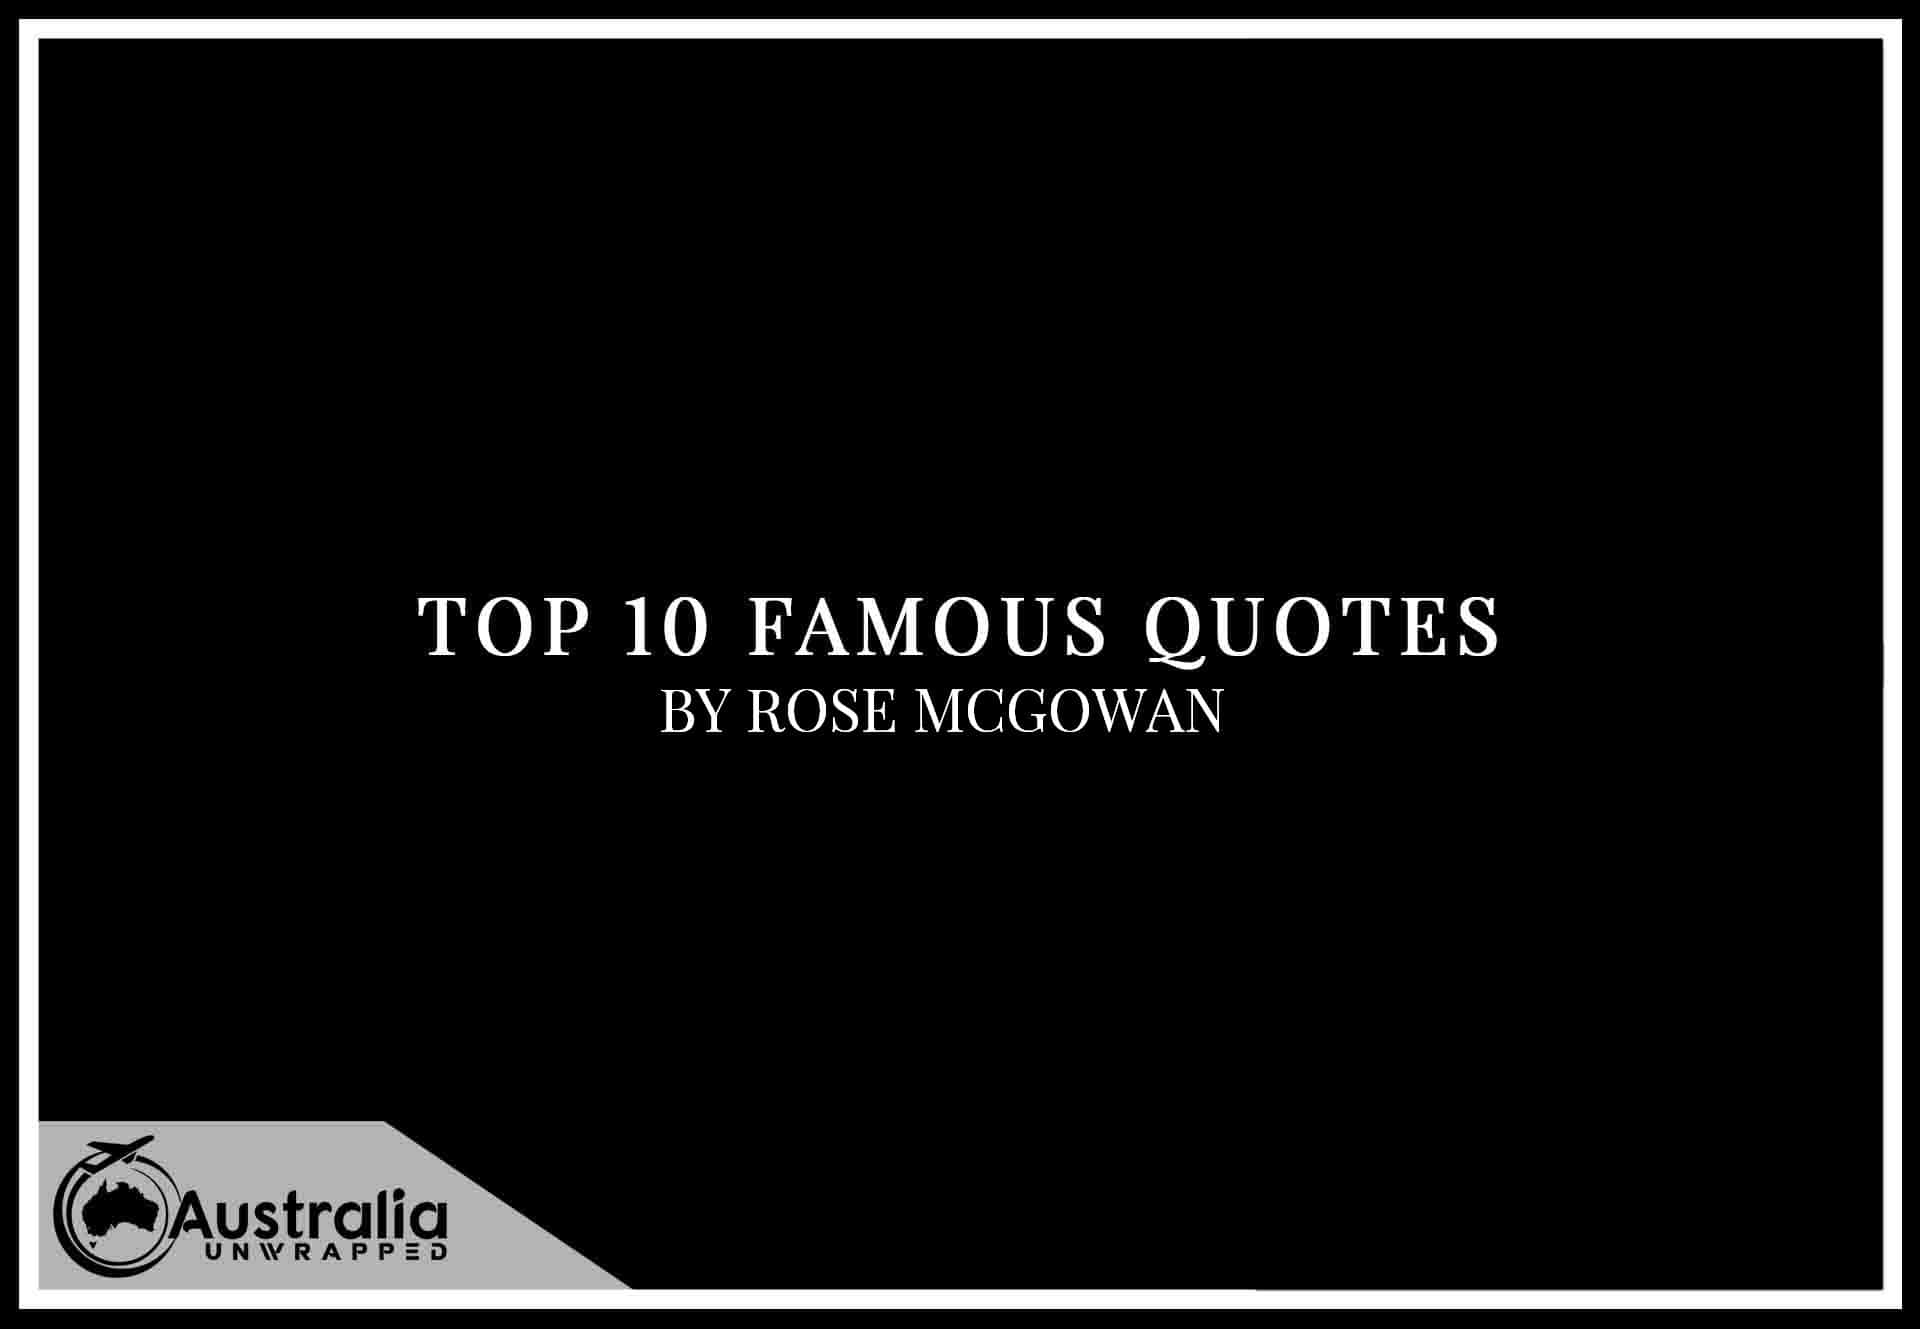 Top 10 Famous Quotes by Author Rose McGowan